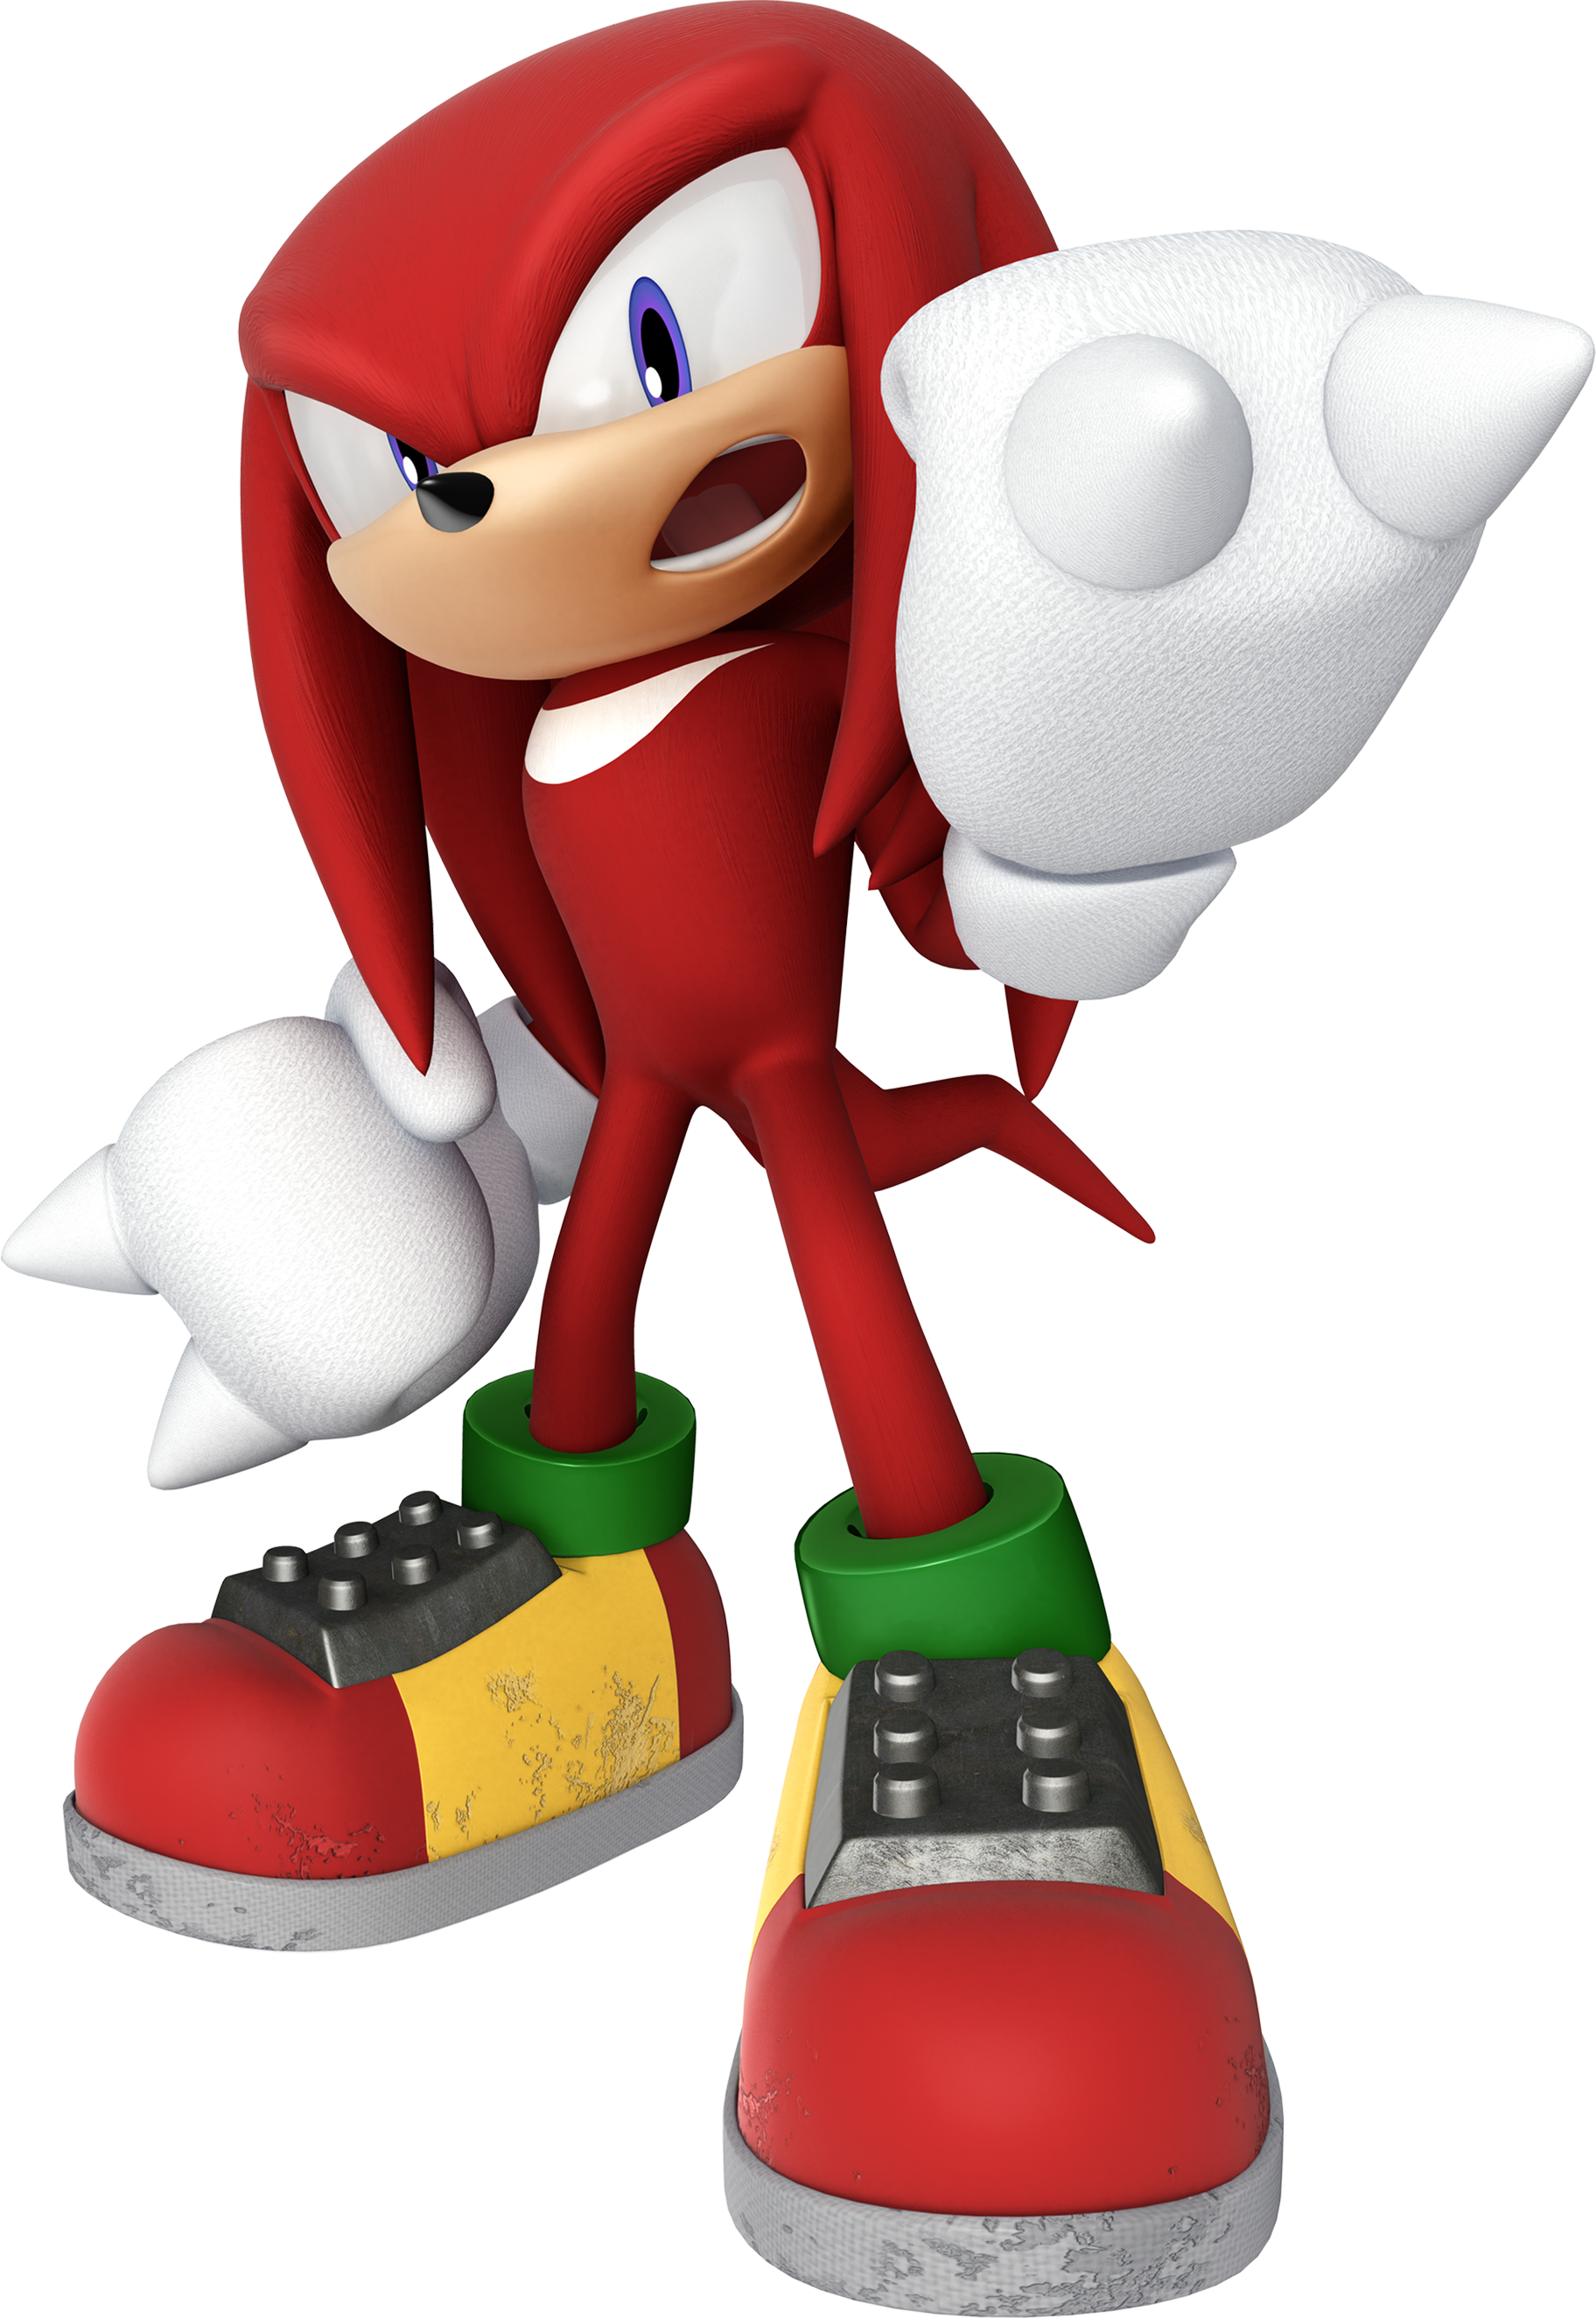 Fist clipart knuckle. Knuckles the echidna fists